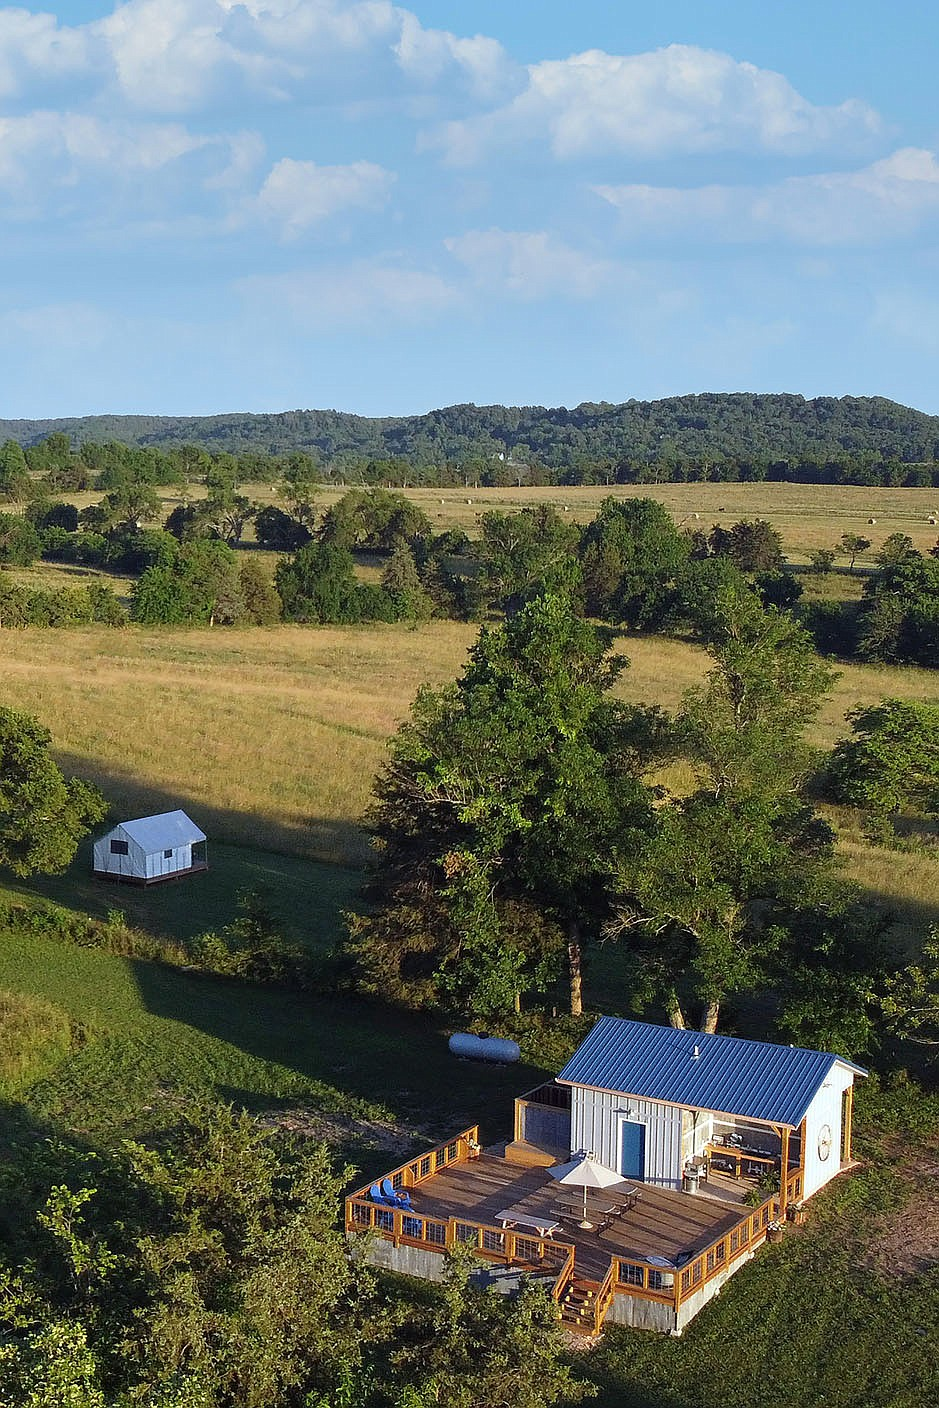 PHOTO COURTESY OF SUNSHINE JOY/The views from atop the hill at Little Sugar Farm are crowd-pleasers. From the outdoor kitchen and patio (right) you can see Little Sugar Creek while views from a safari tent (left) look over rolling hills and greenery.